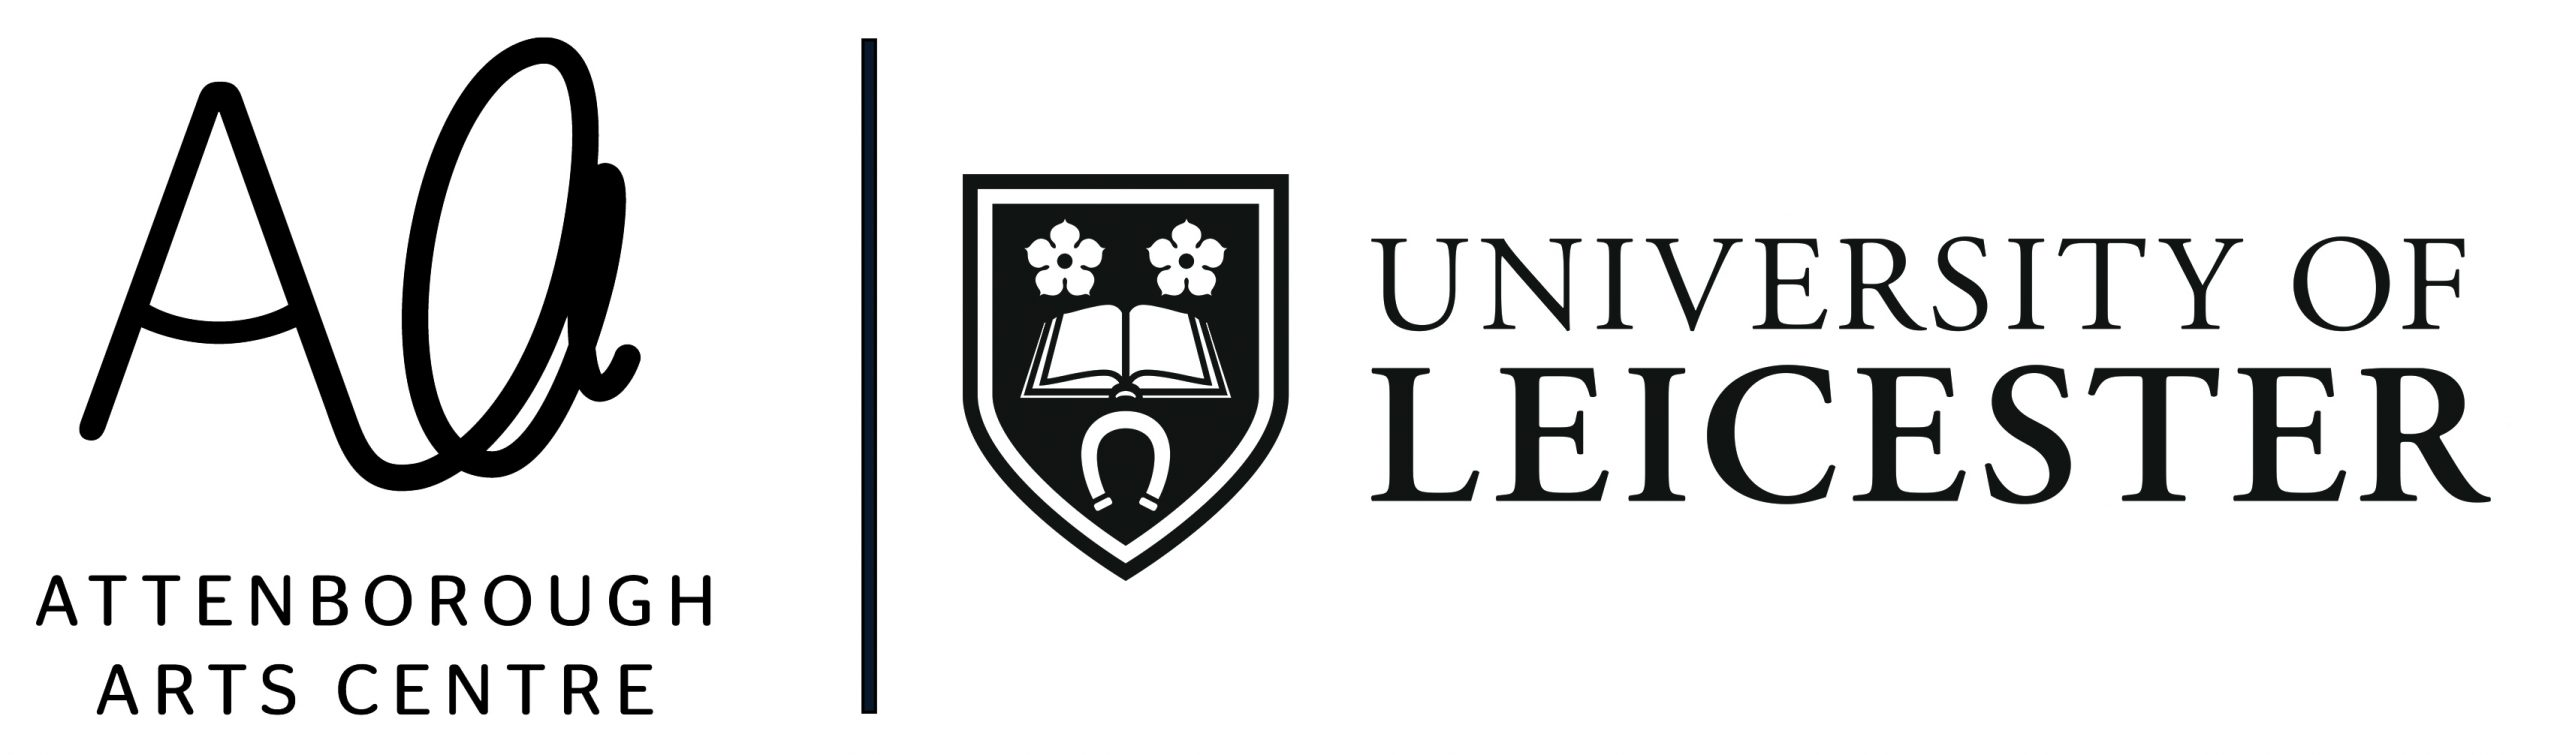 Attenborough Arts centre and University of Leicester logo